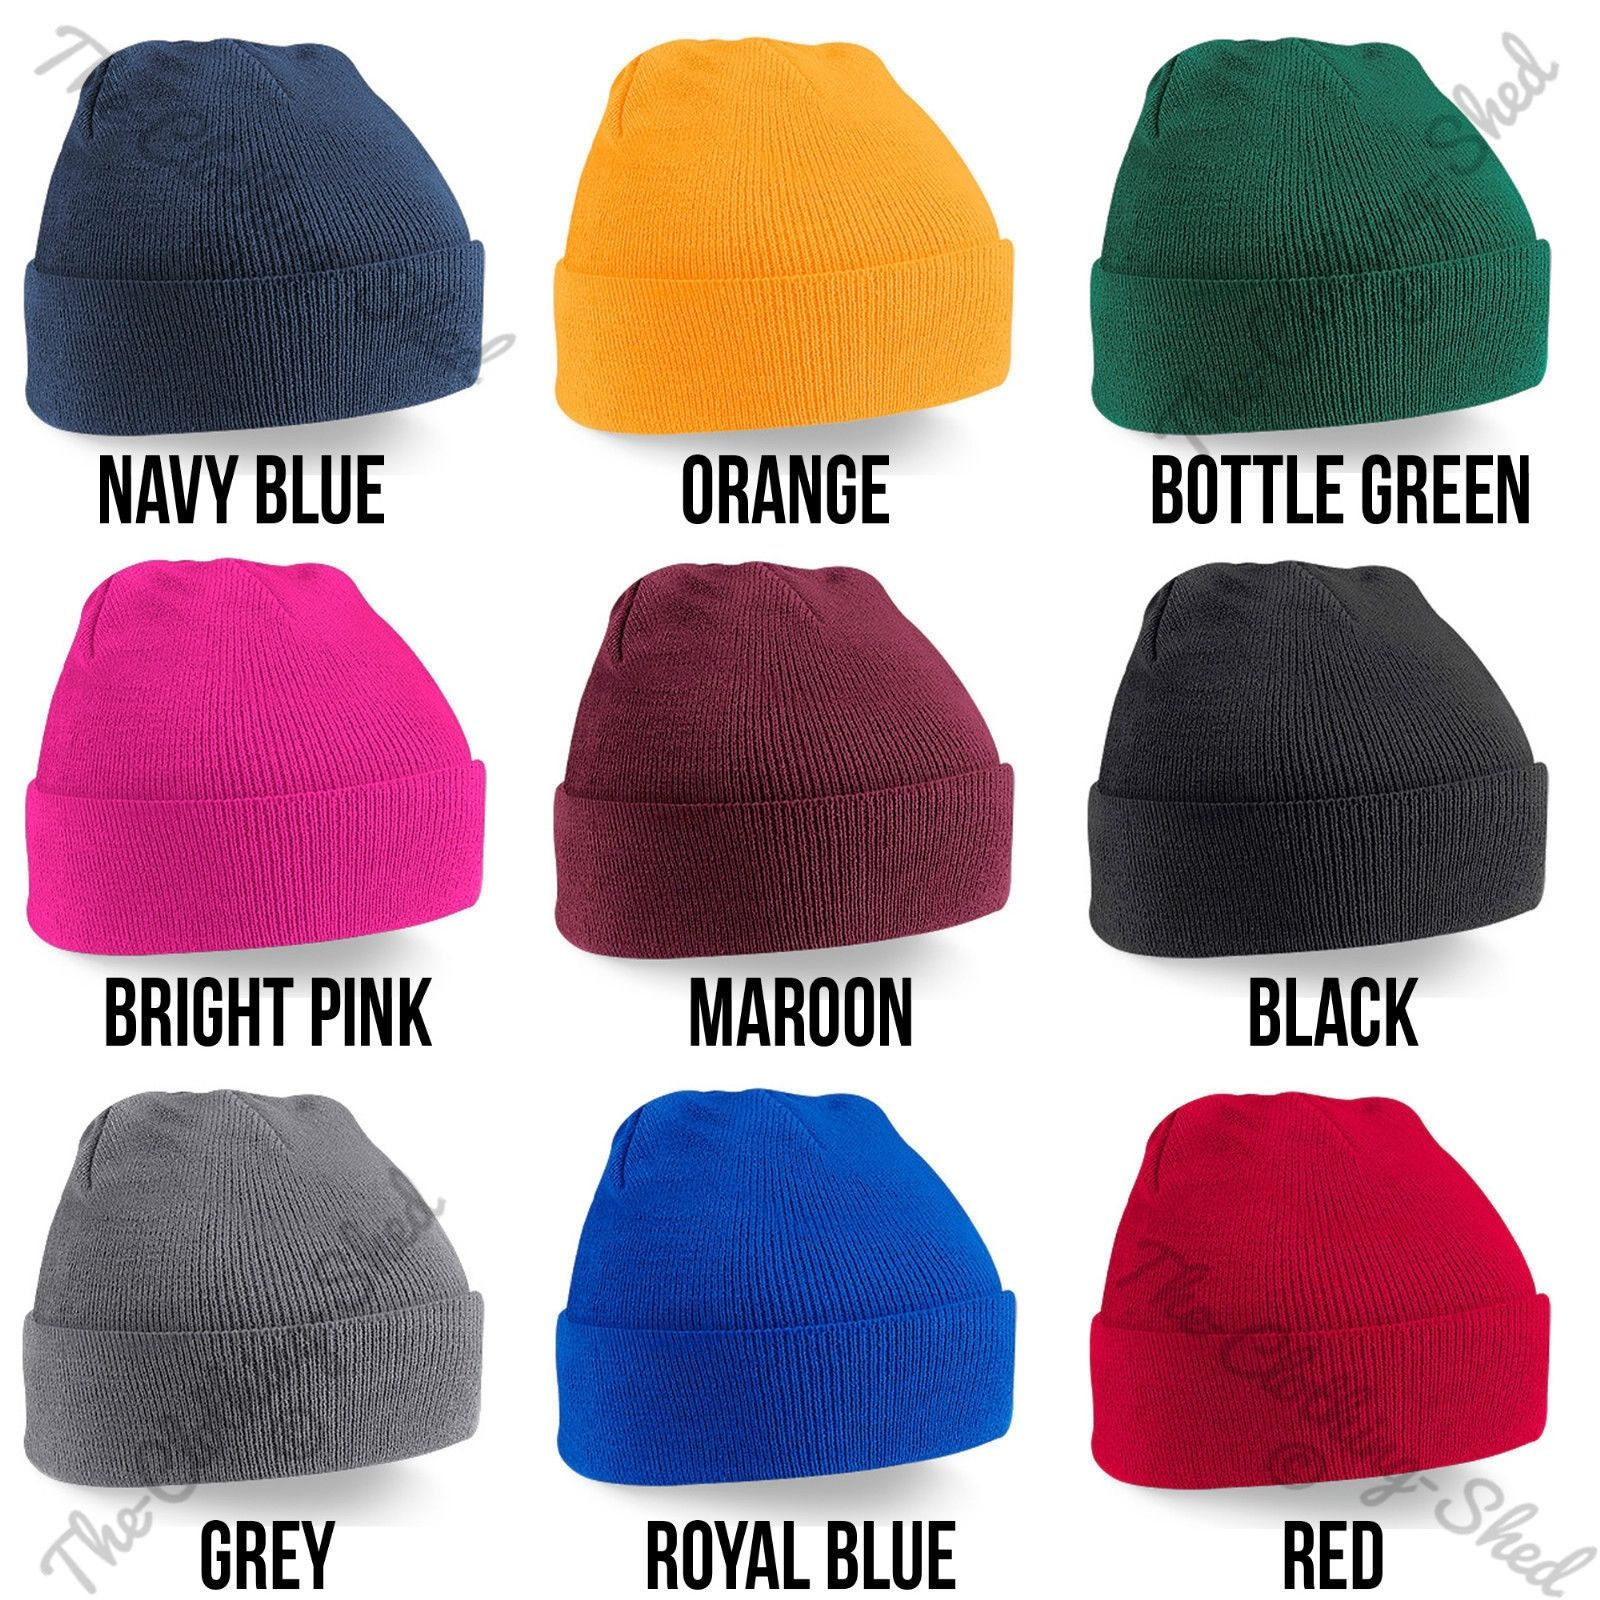 c7db5edf9bb Product image 1 BROOKLYN BEANIE HAT MEN WOMEN HIPSTER AMERICAN STYLE SWAG  DOPE NEW YORK. Product image ...